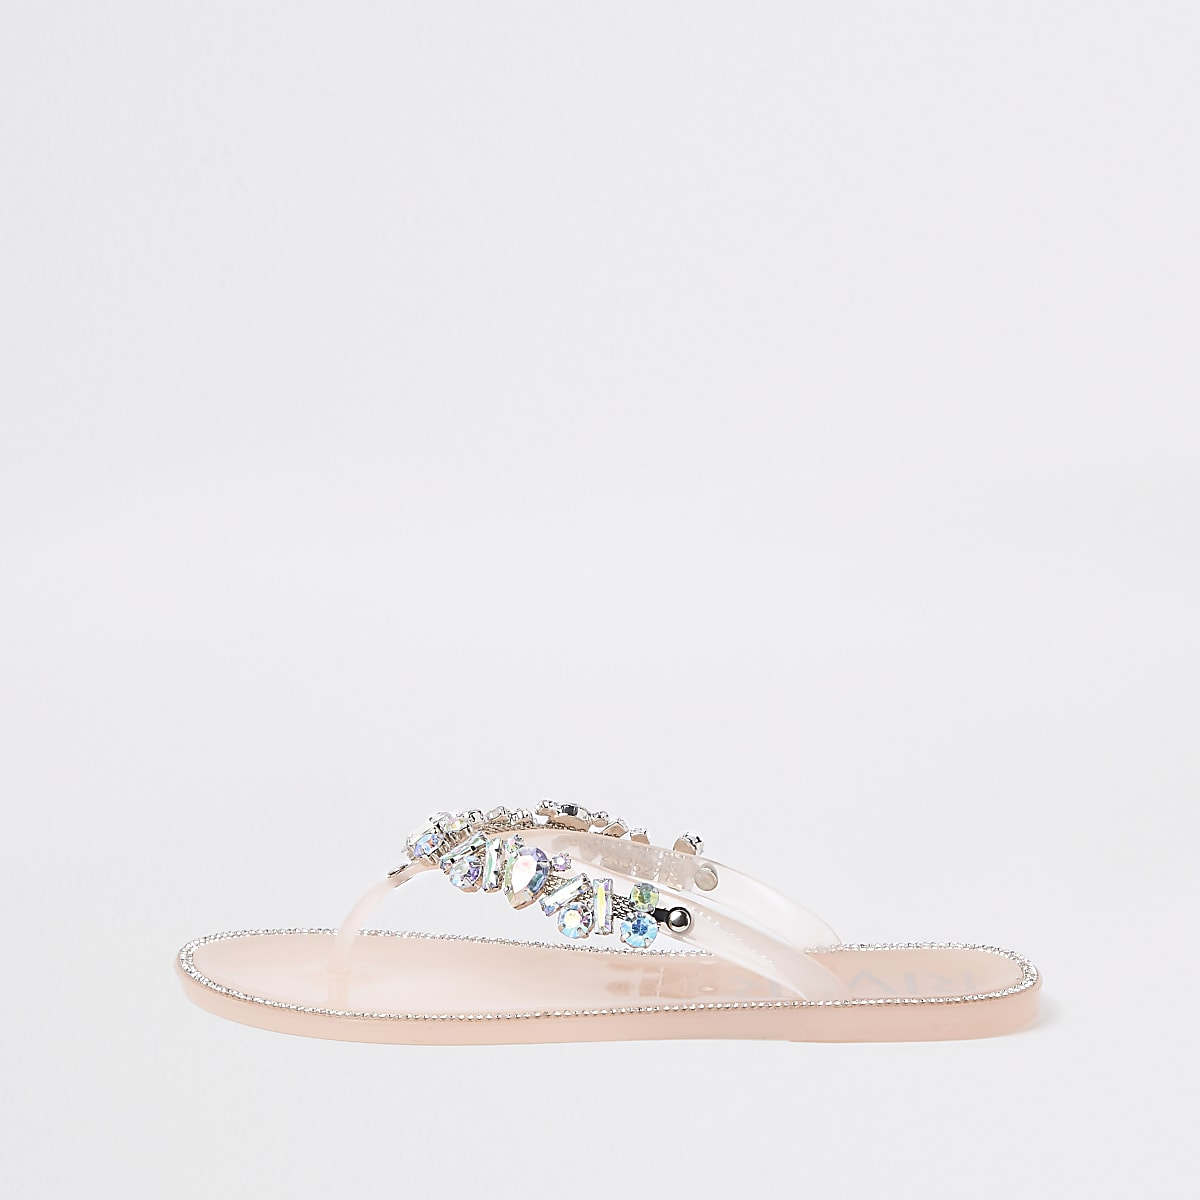 6058145a85c Light pink gem embellished jelly flip flops - Sandals - Shoes   Boots -  women